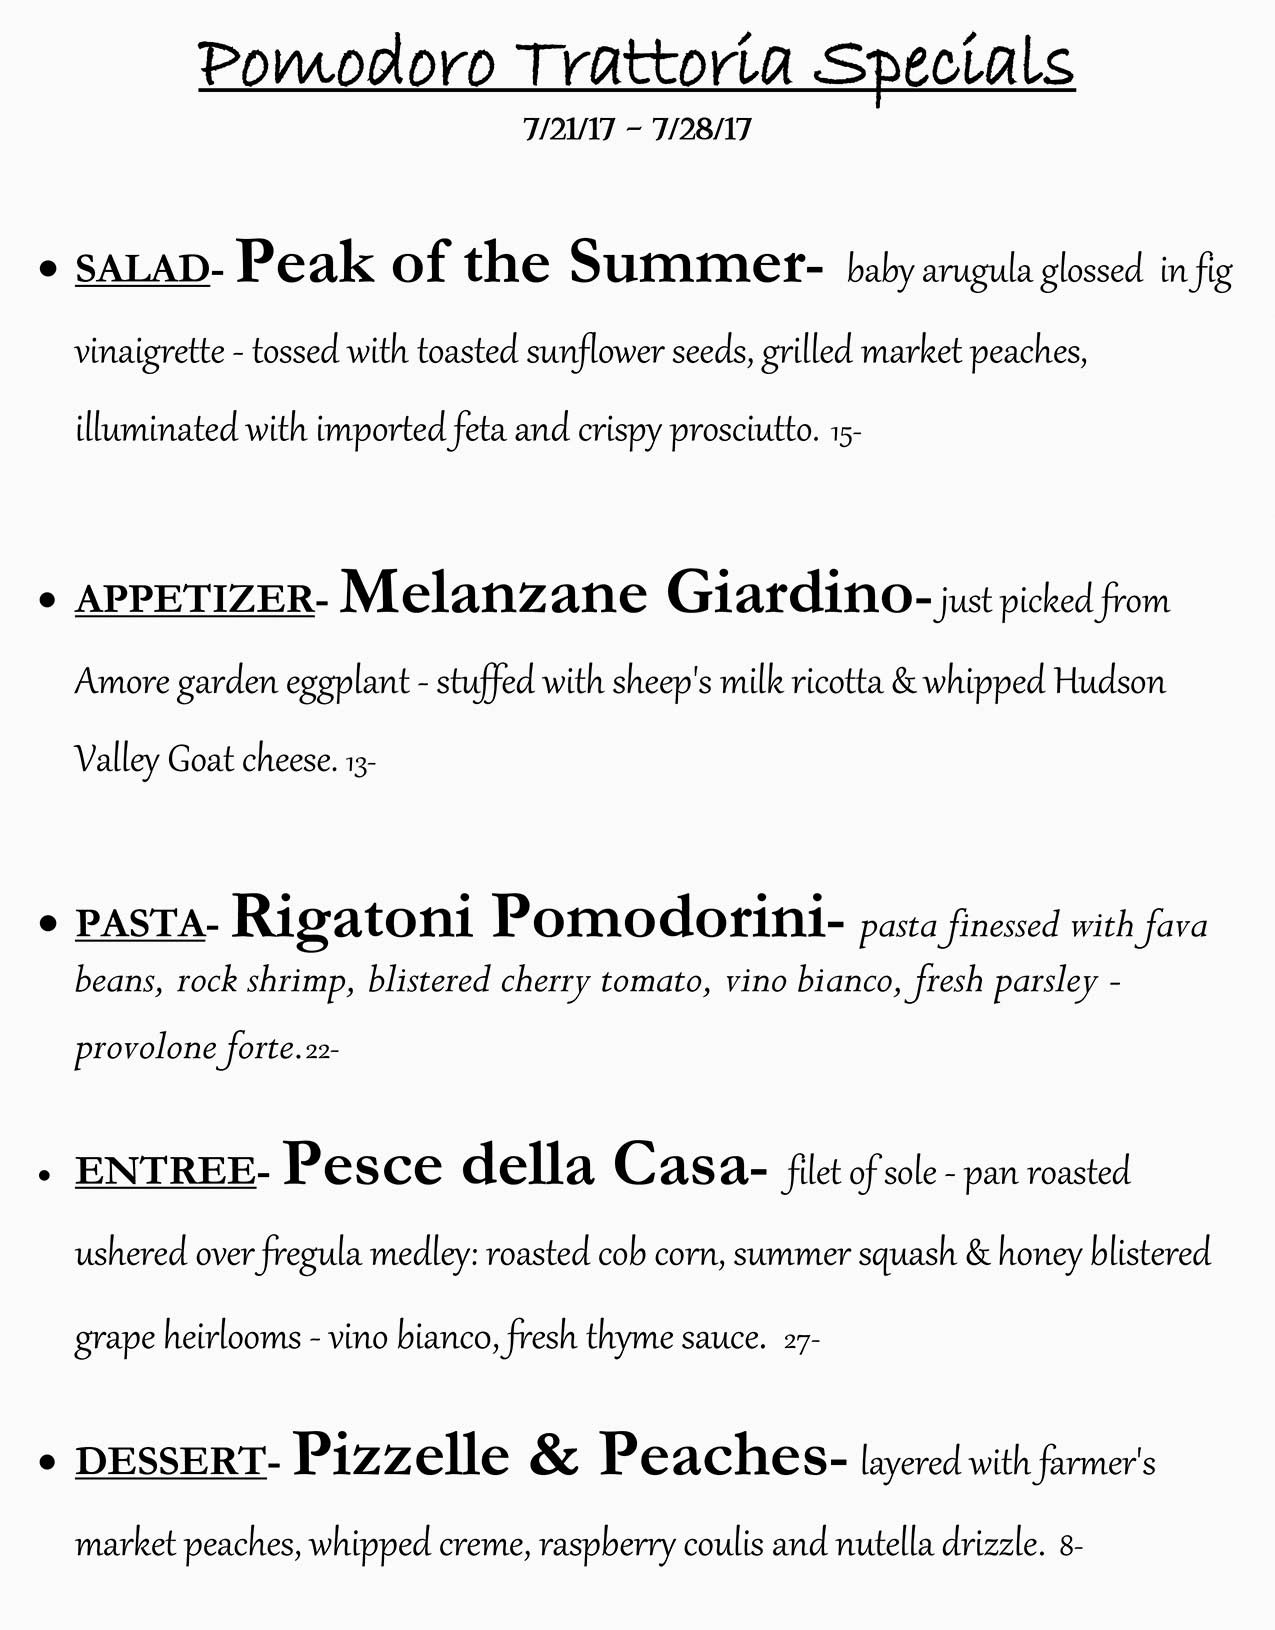 Pomodoro Riverside Weekly Specials from 07/21 - 07/28